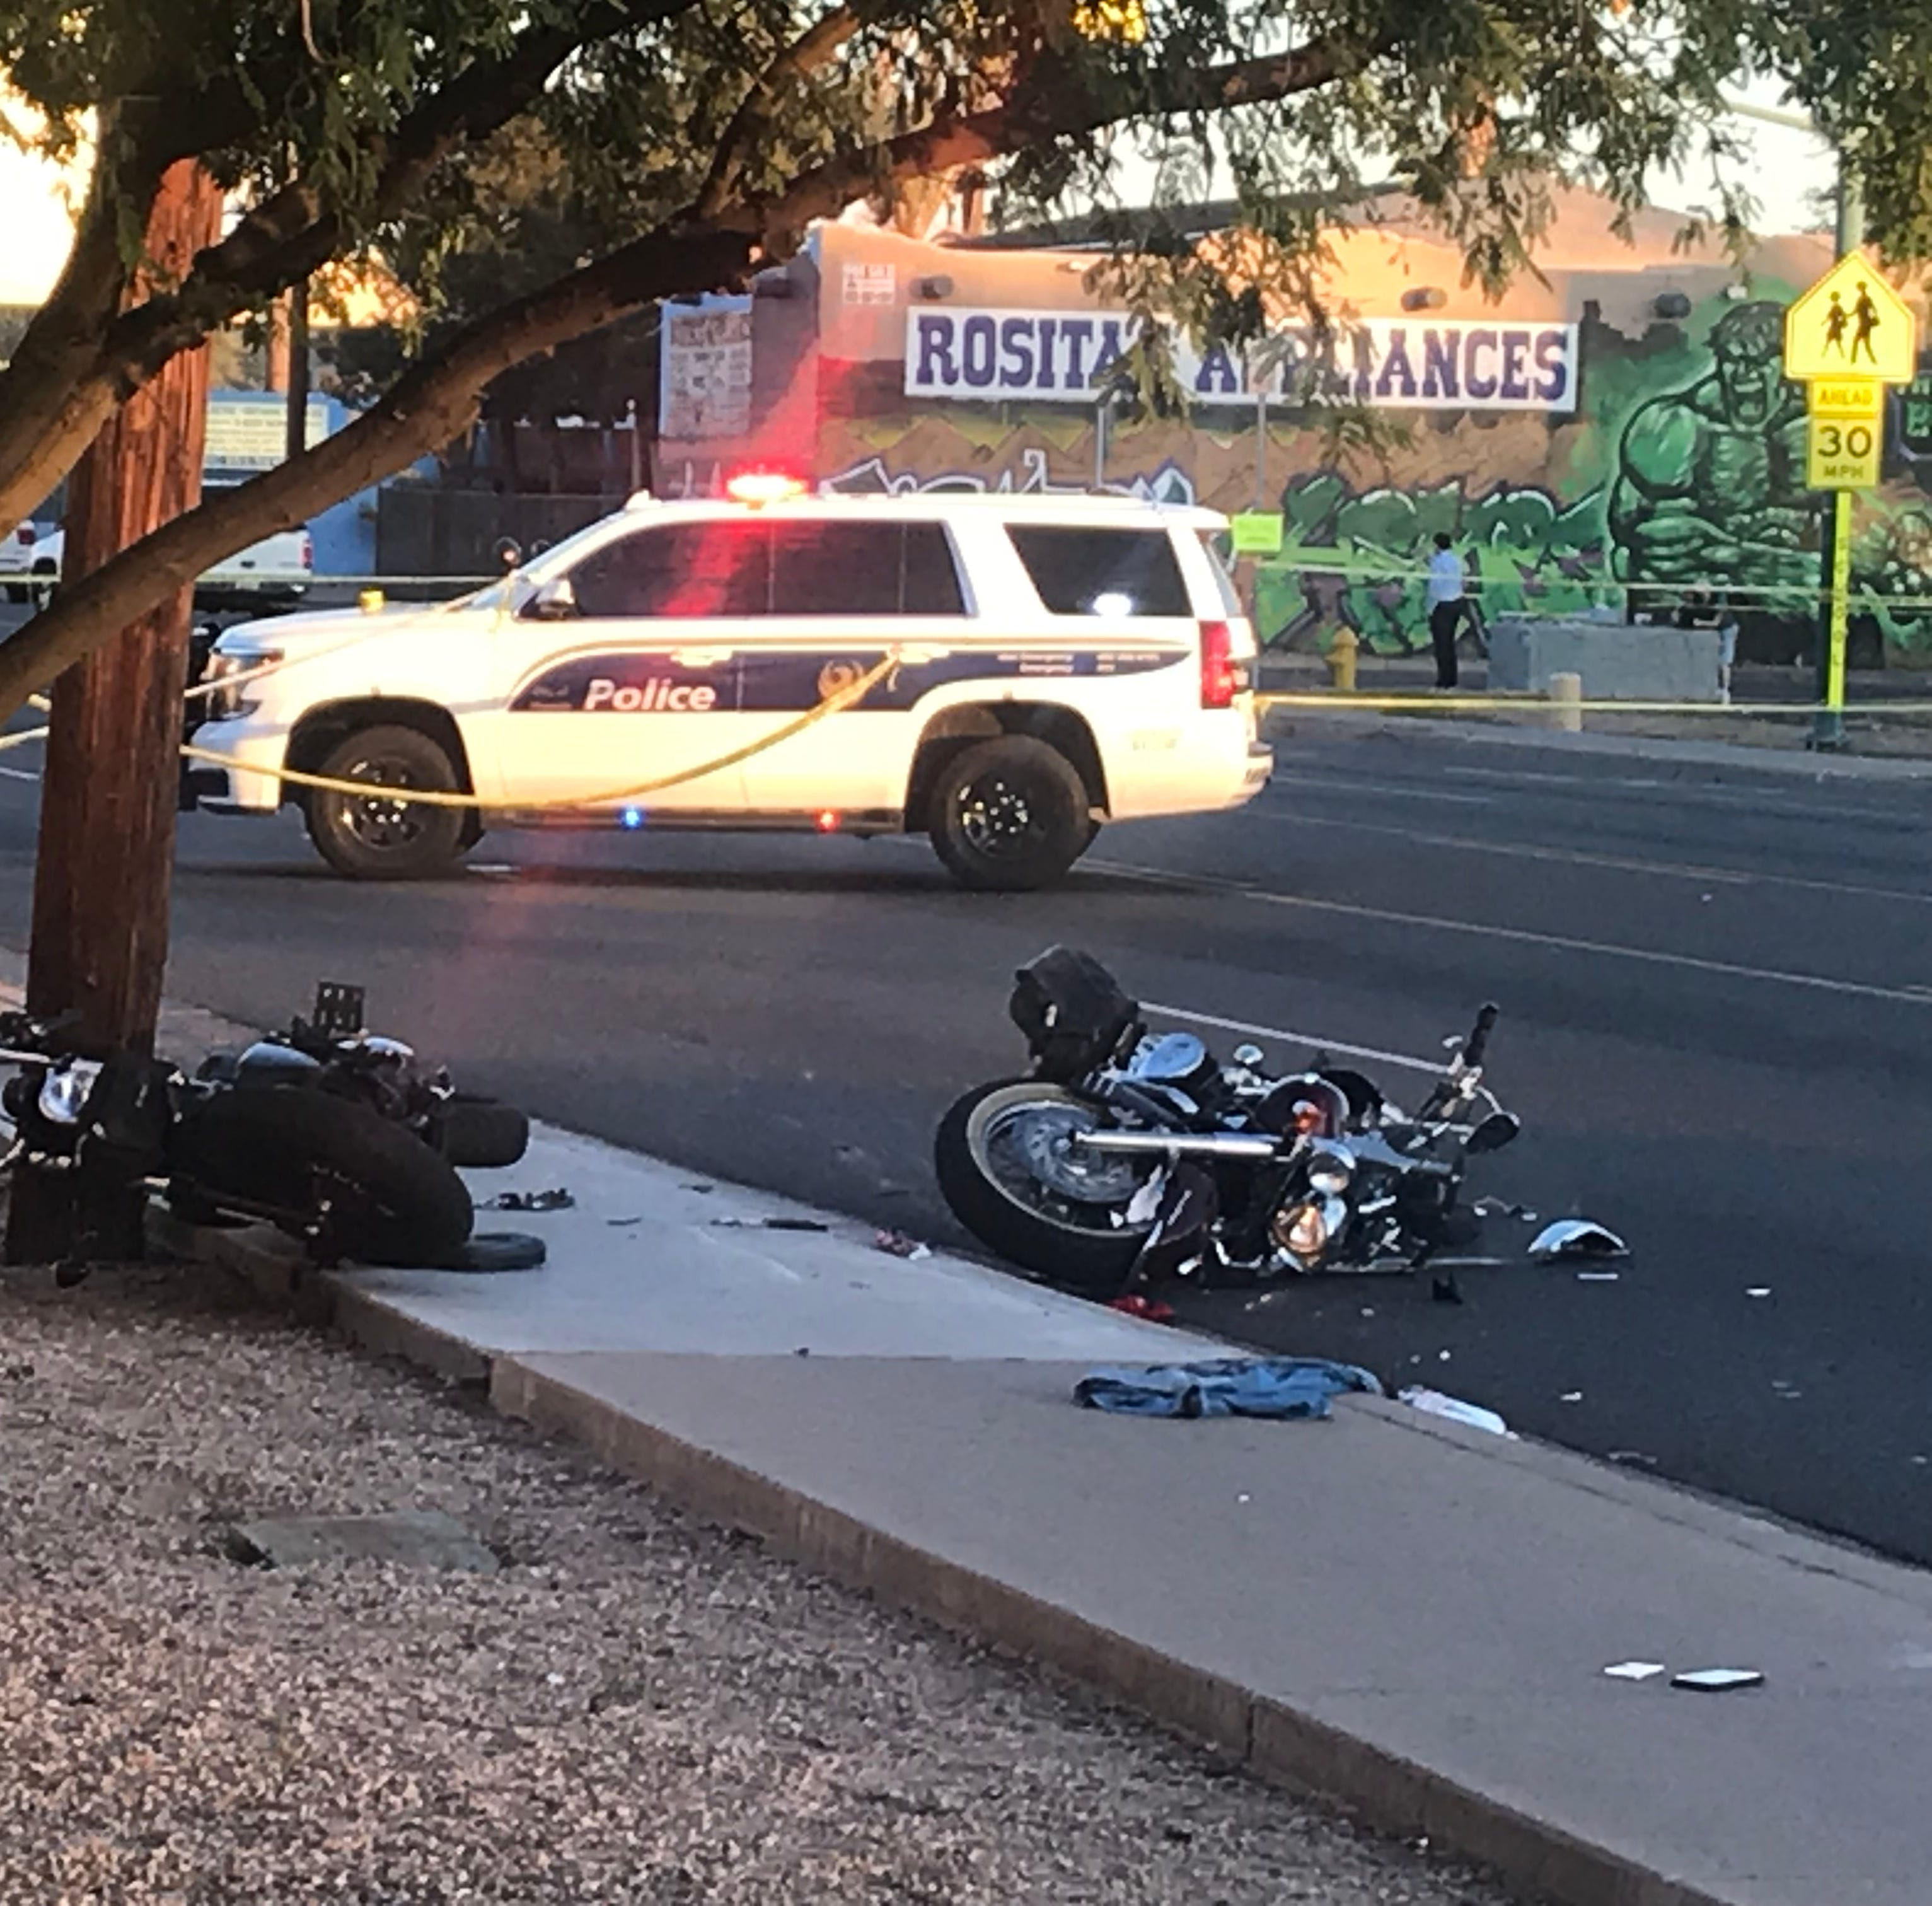 Impairment suspected in Phoenix motorcycle crash, police searching for 3rd driver